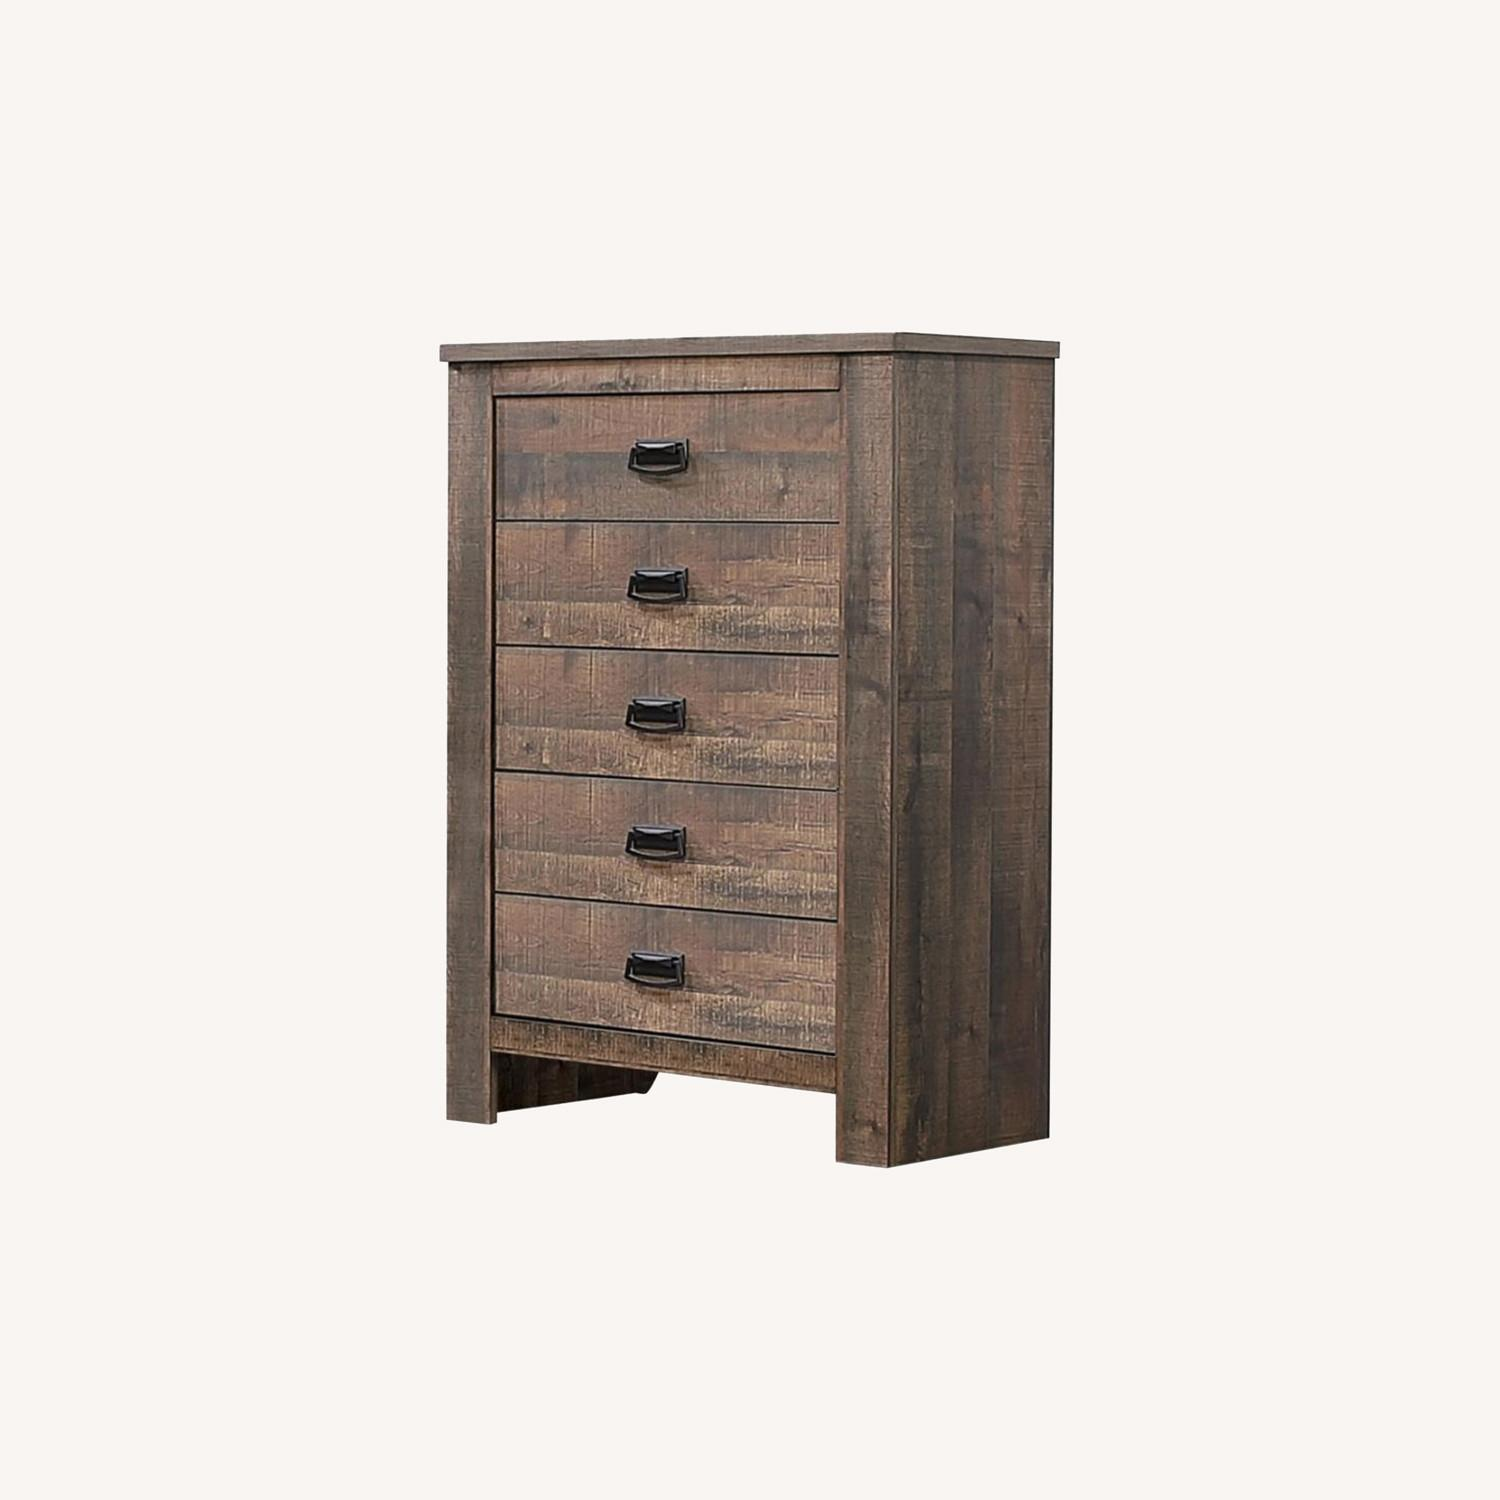 Chest In Weathered Oak Finish W/ Bail Handle - image-3